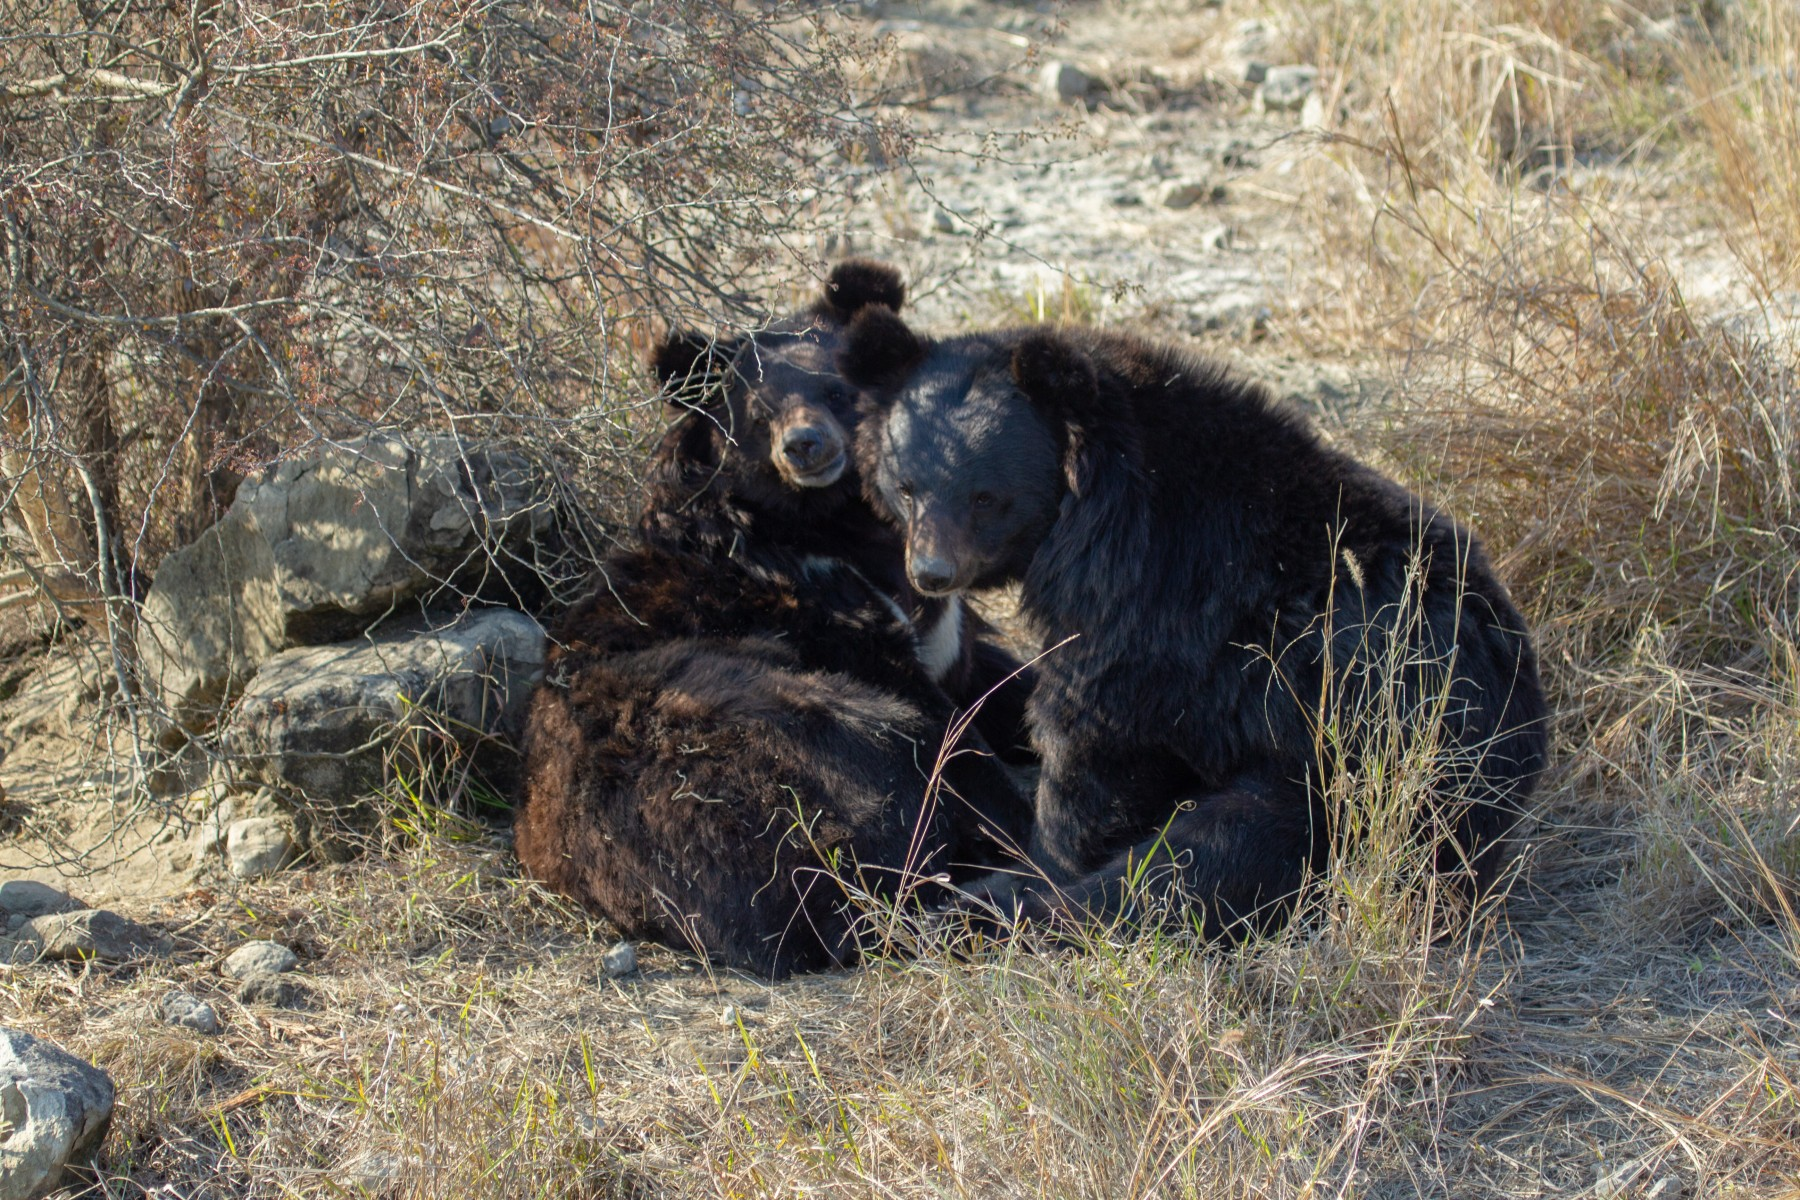 Pictured: Two rescued bears in our partner sanctuary.